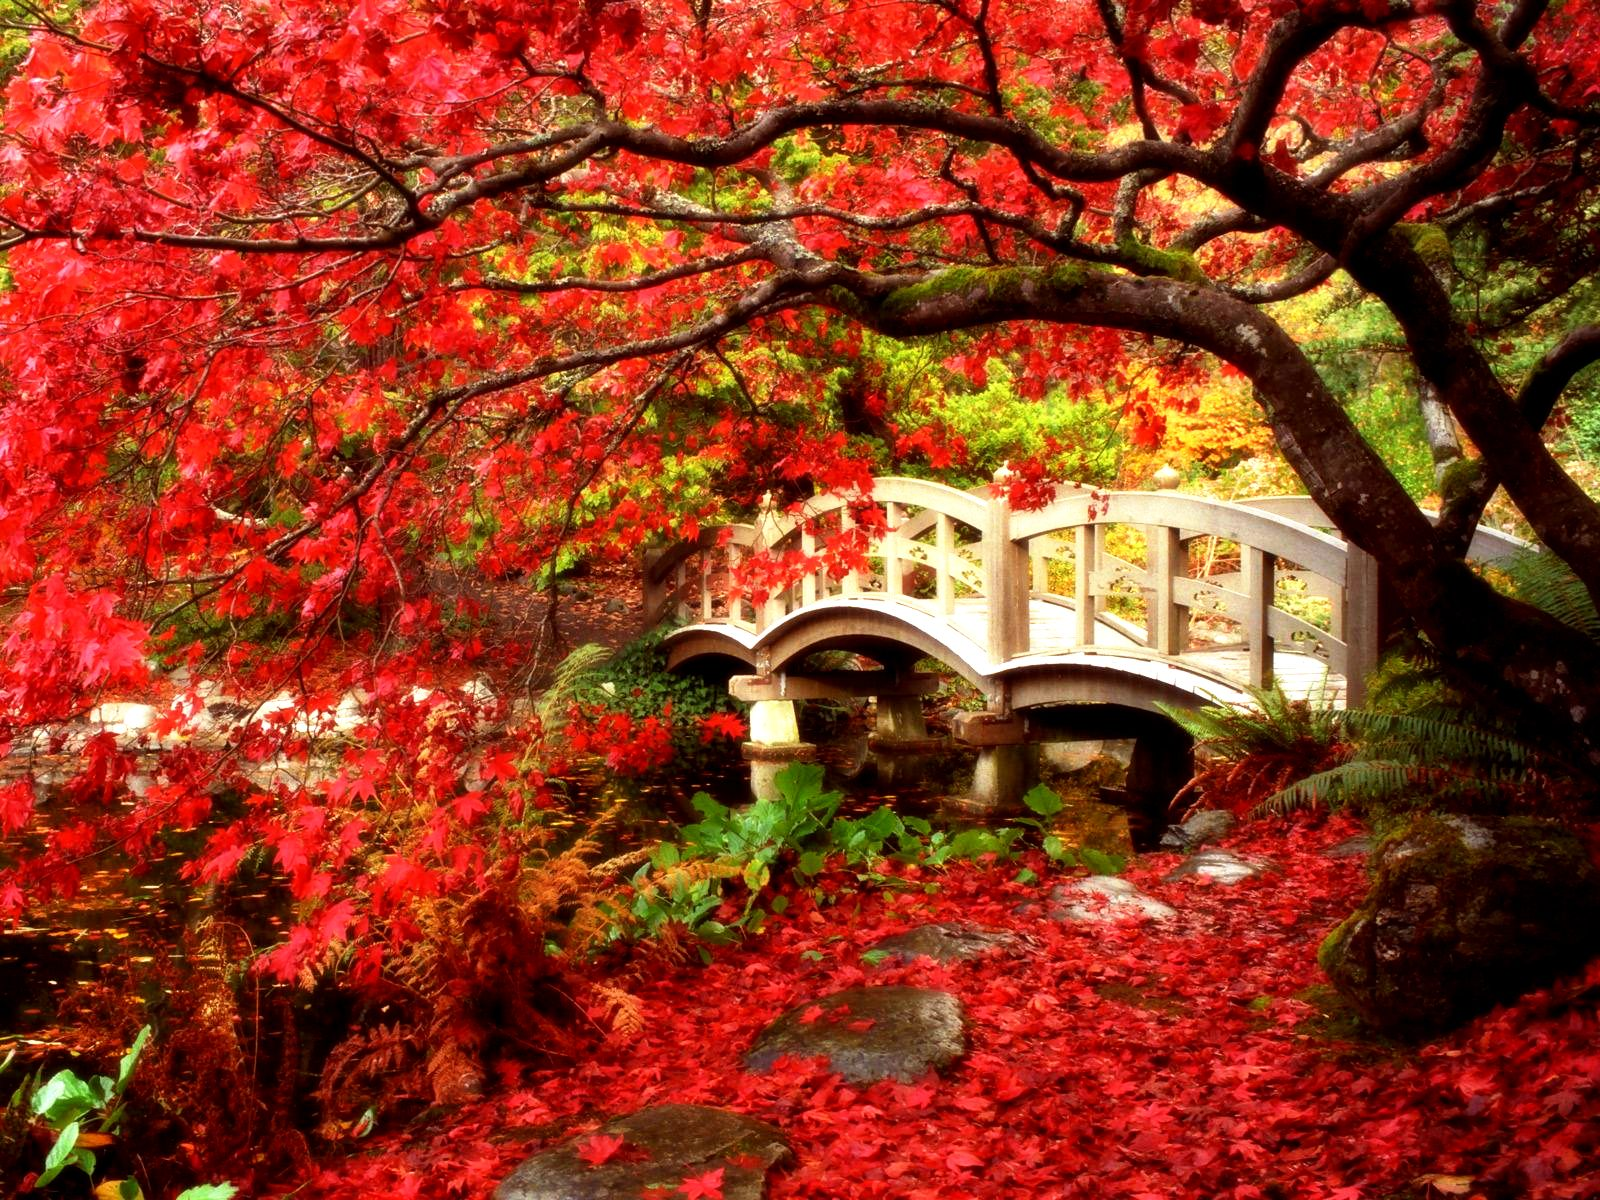 Bridge wallpaper and background image 1600x1200 id 18002 for Japanese garden trees